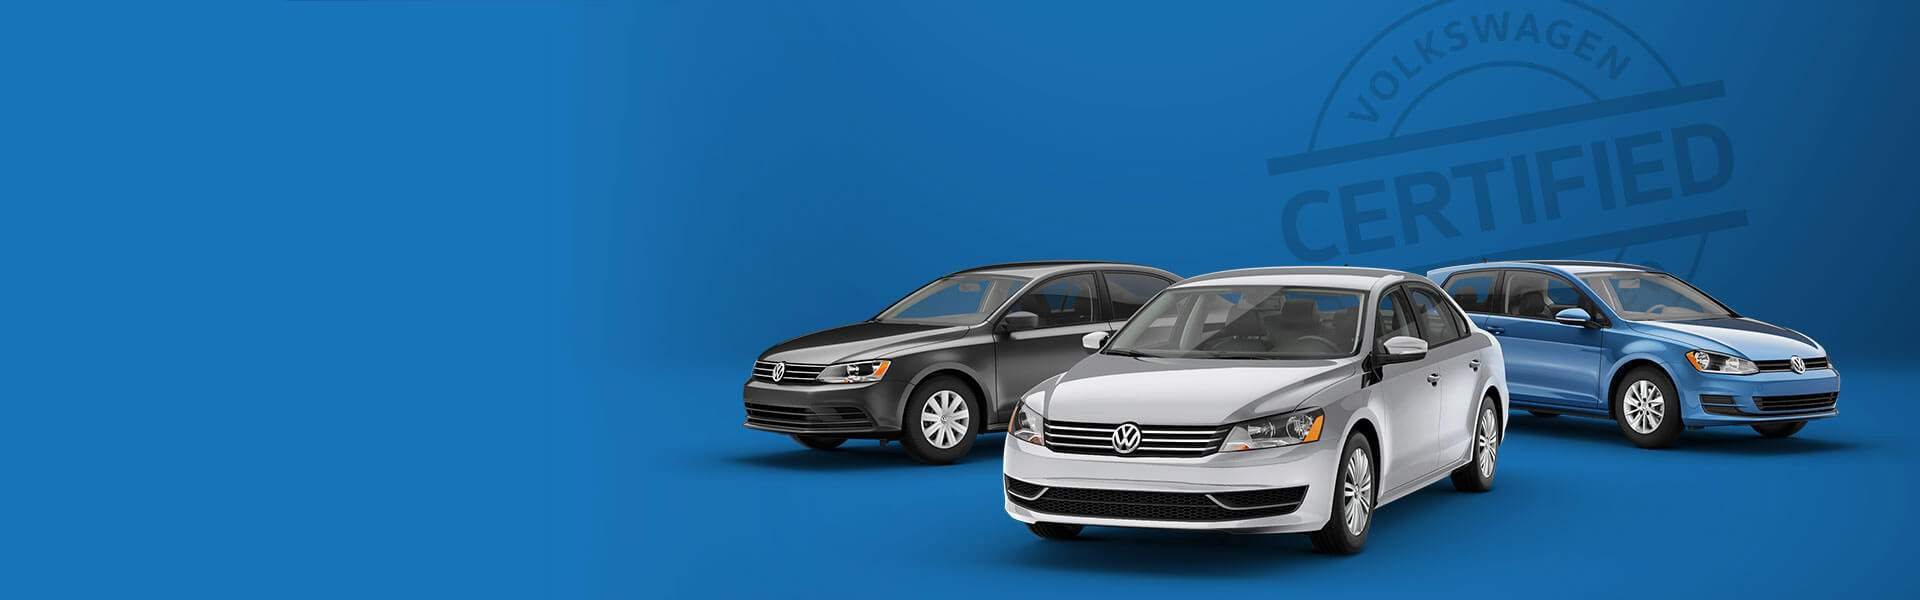 Volkswagen Certified Pre-Owned in New Orleans, LA